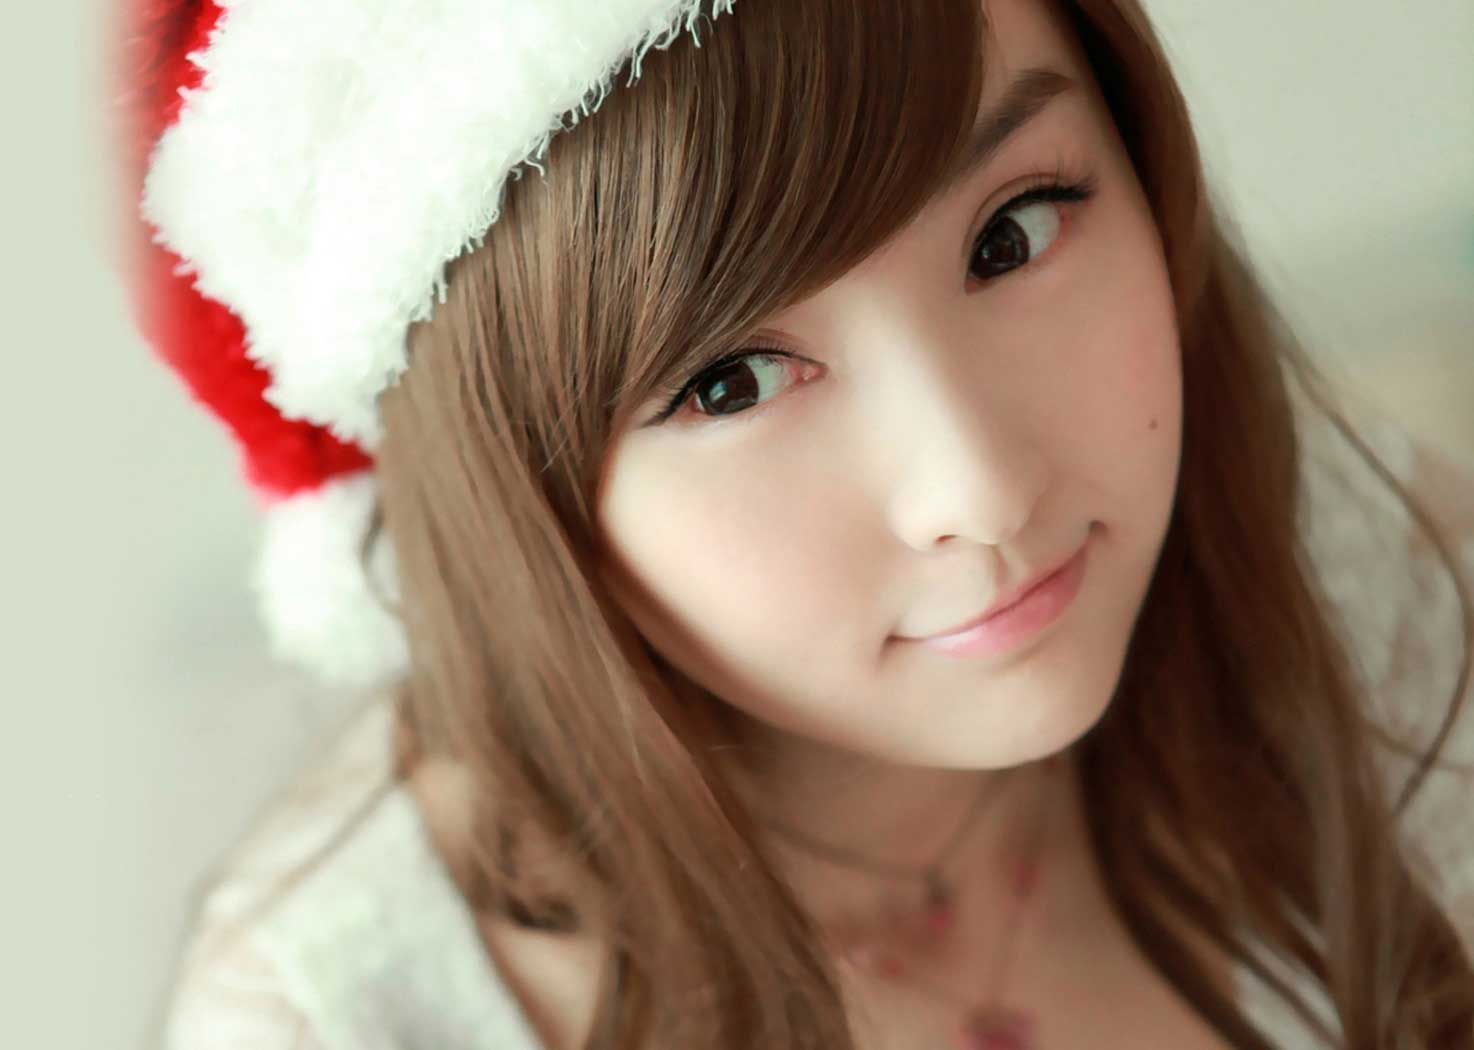 Iphone Hd Wallpaper Quotes Cutest Christmas Girls Profile Dp For Whatsapp